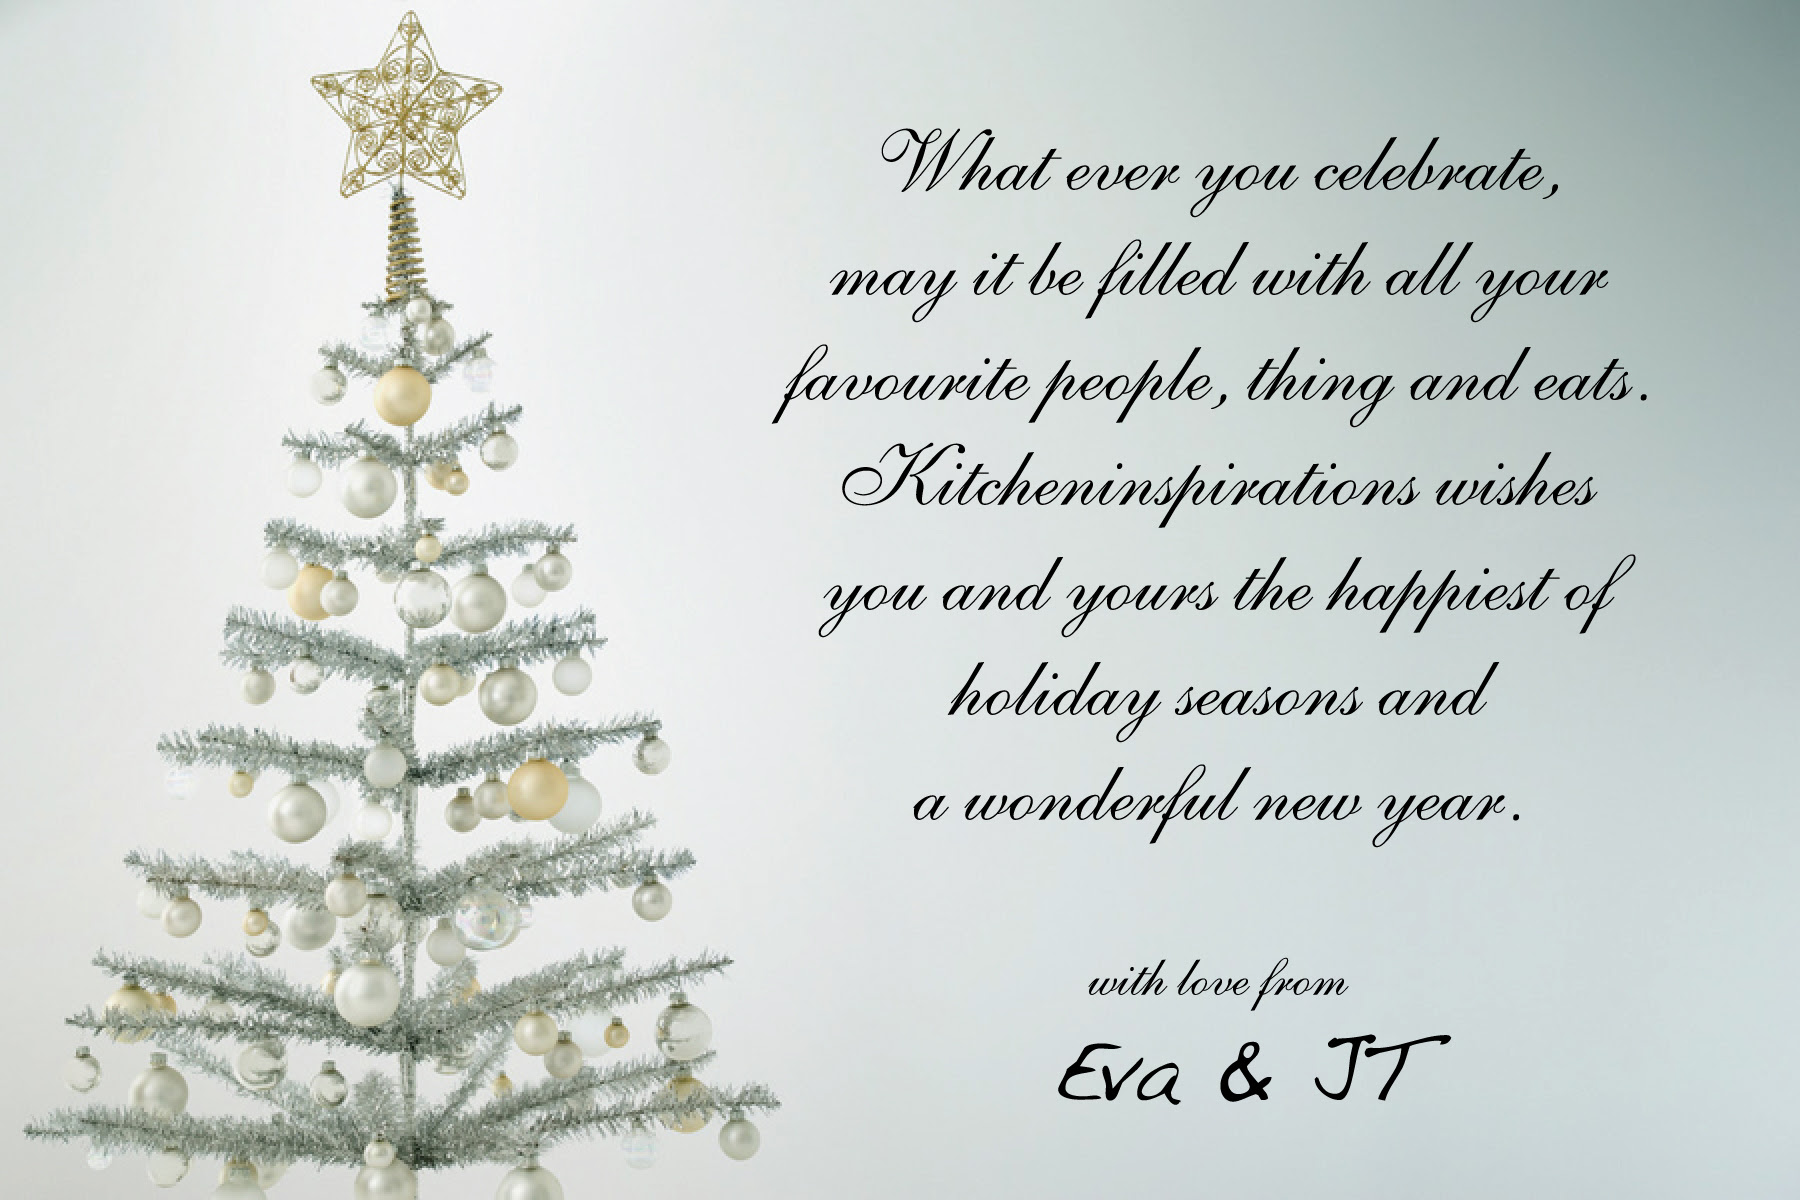 Christian Christmas Greetings For Family Xmast 4